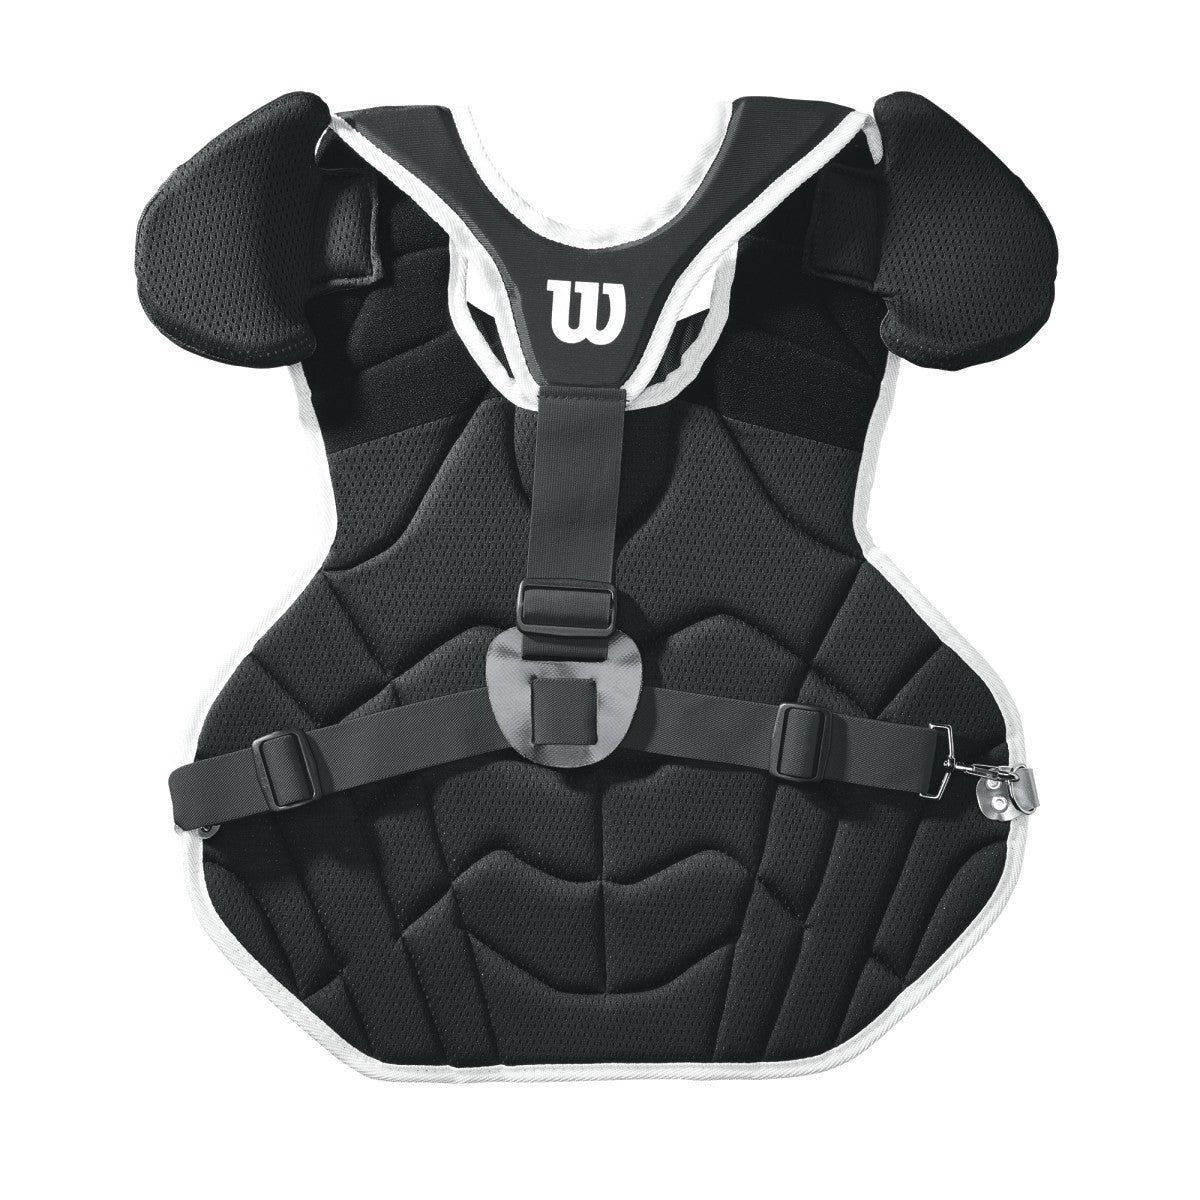 80d7664a17d Wilson C1K CATCHERS GEAR KIT - ADULT – Texas Bat Company